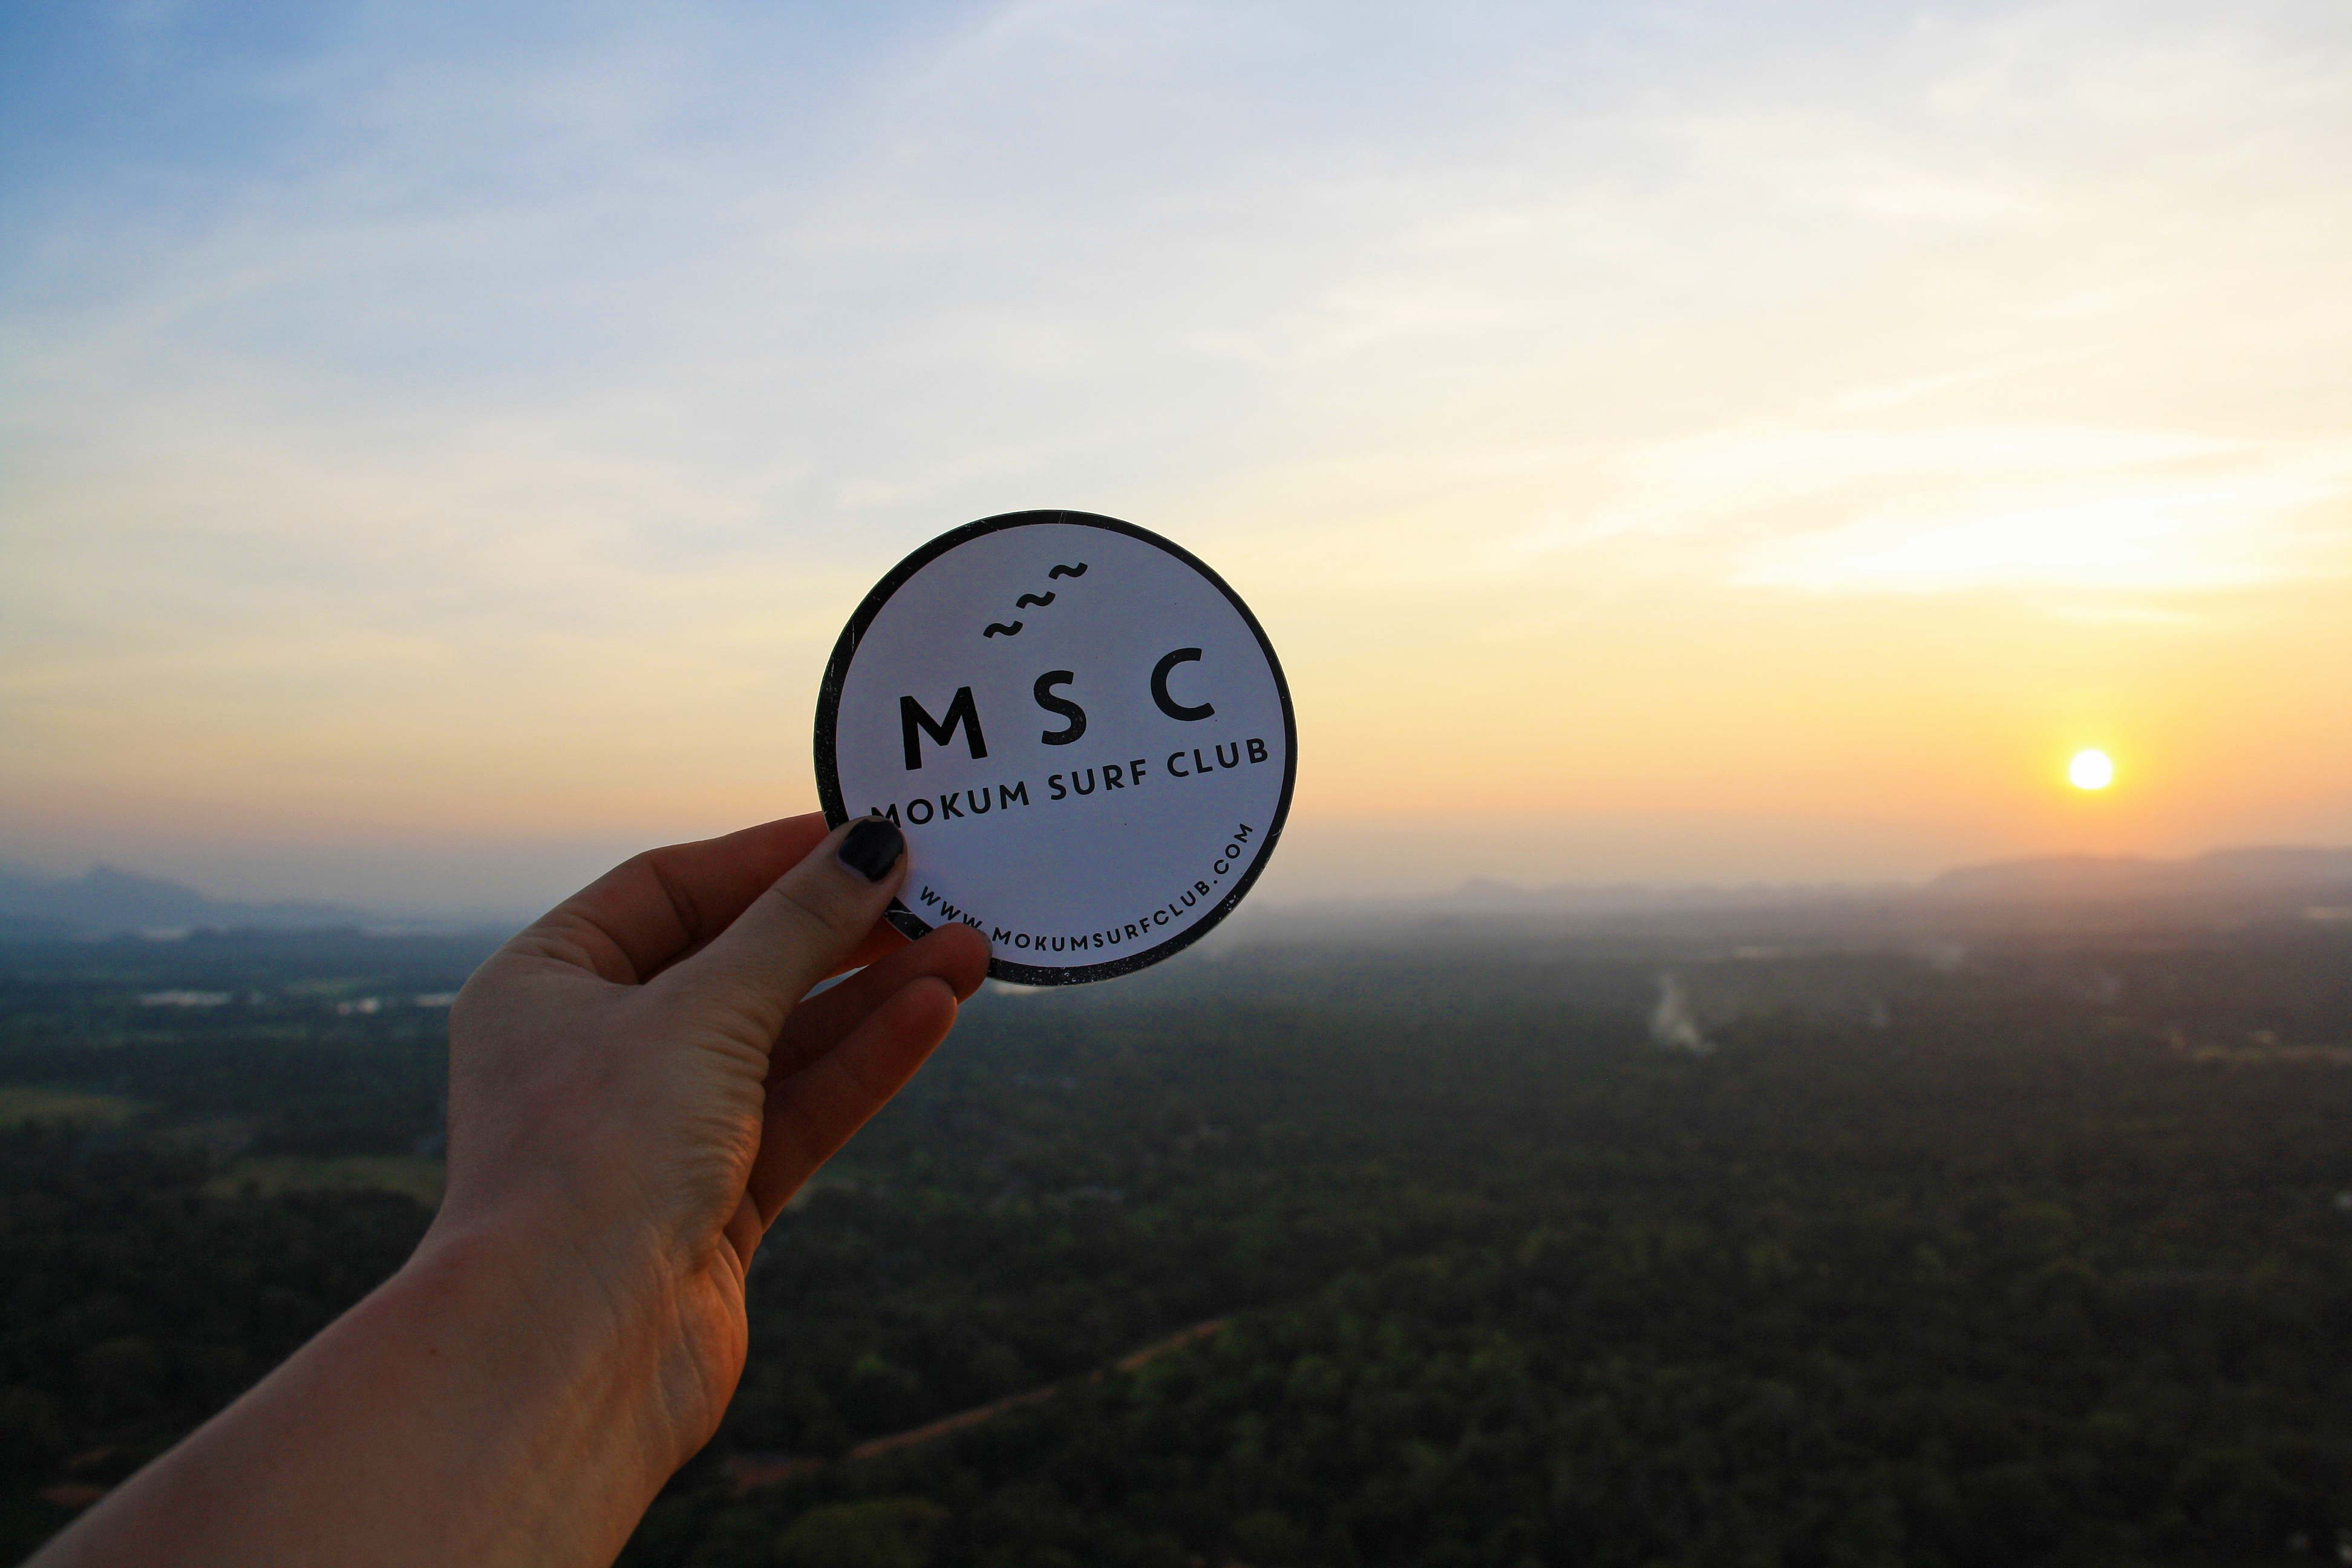 mokum surf club sticker sunset sigiriya rock sri lanka